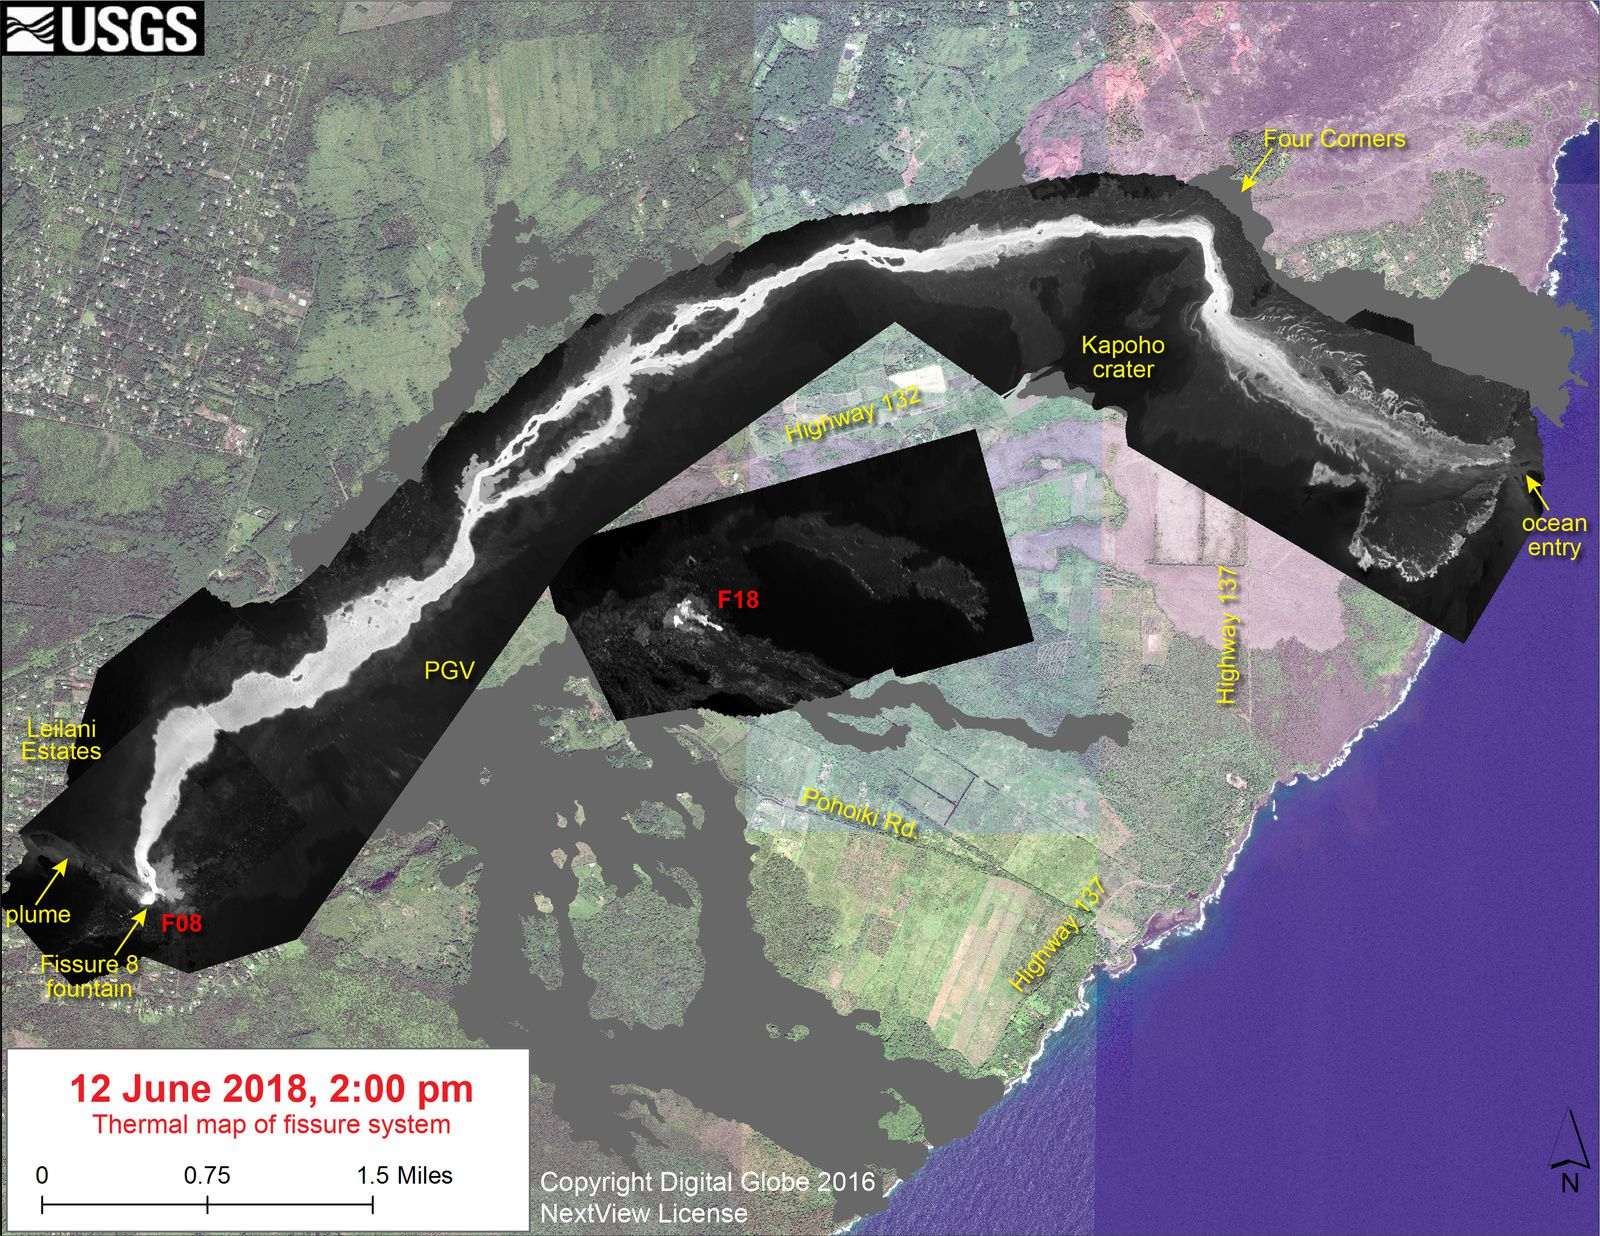 Kilauea East rift zone - thermal map of fissure system - 12.06.2018 / 14 h - HVO-USGS